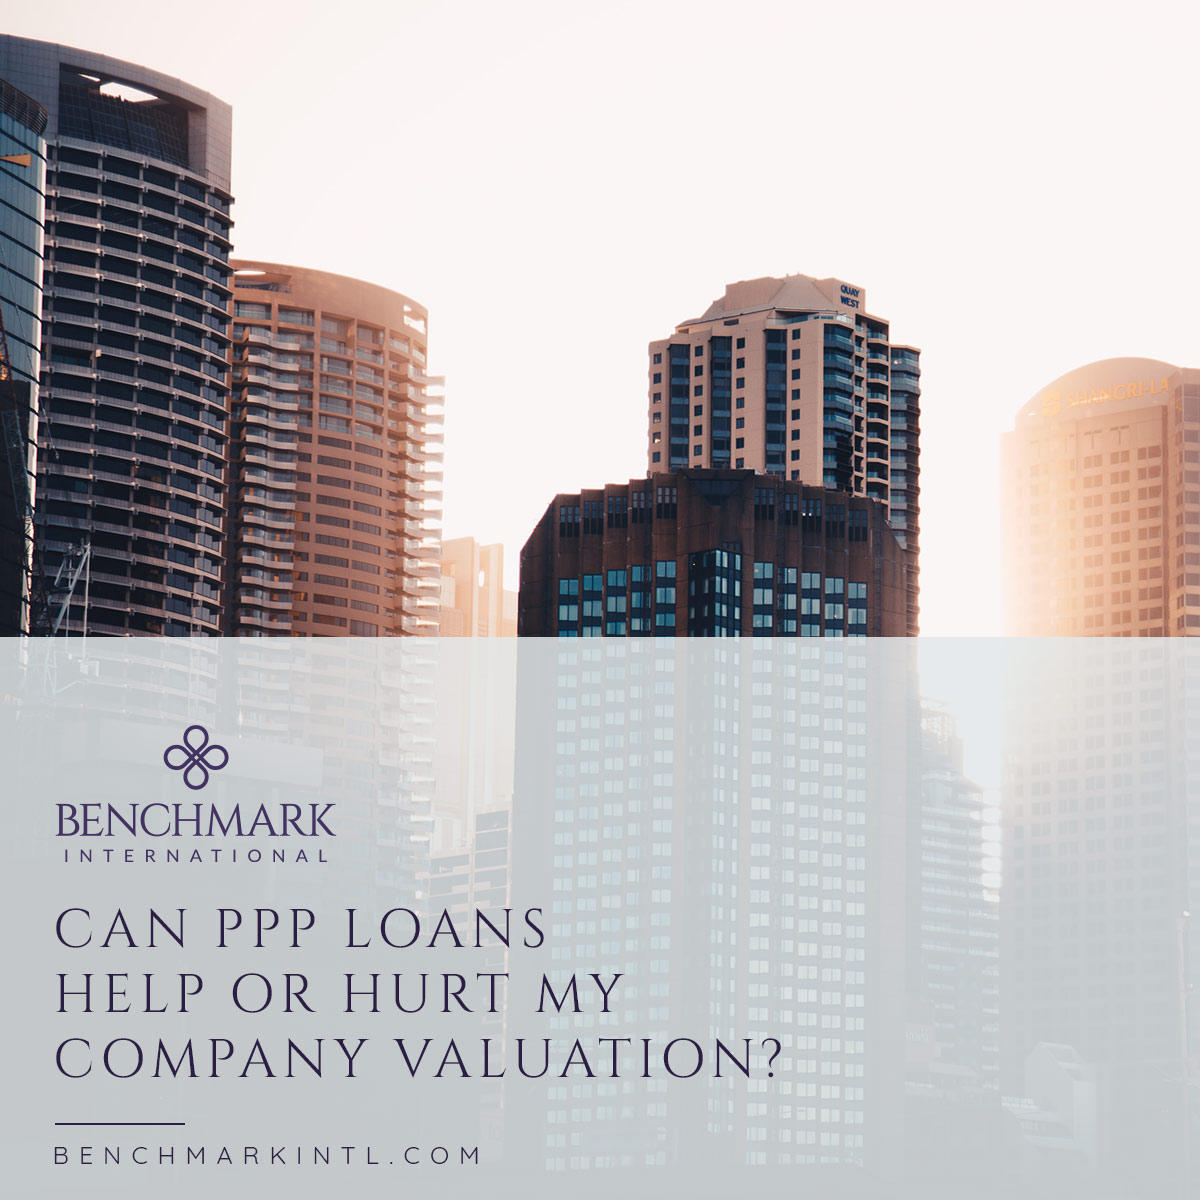 Can_PPP_Loans_Help_or_Hurt_My_Company_Valuation_Social(1)